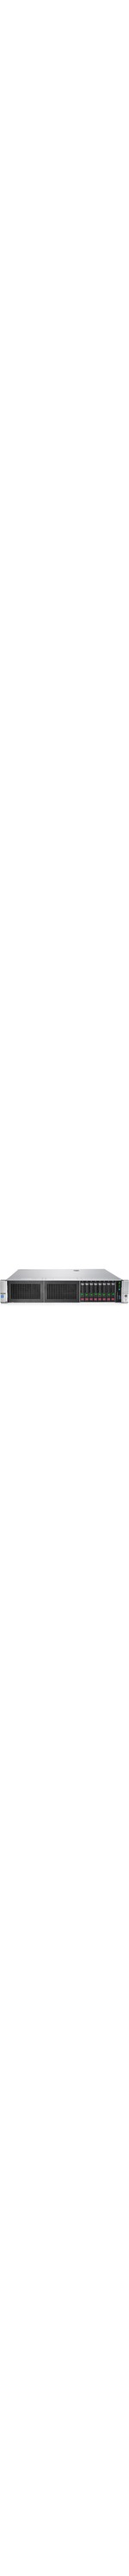 HP ProLiant DL380 G9 2U Rack Server - 1 x Intel Xeon E5-2620 v3 Hexa-core 6 Core 2.40 GHz